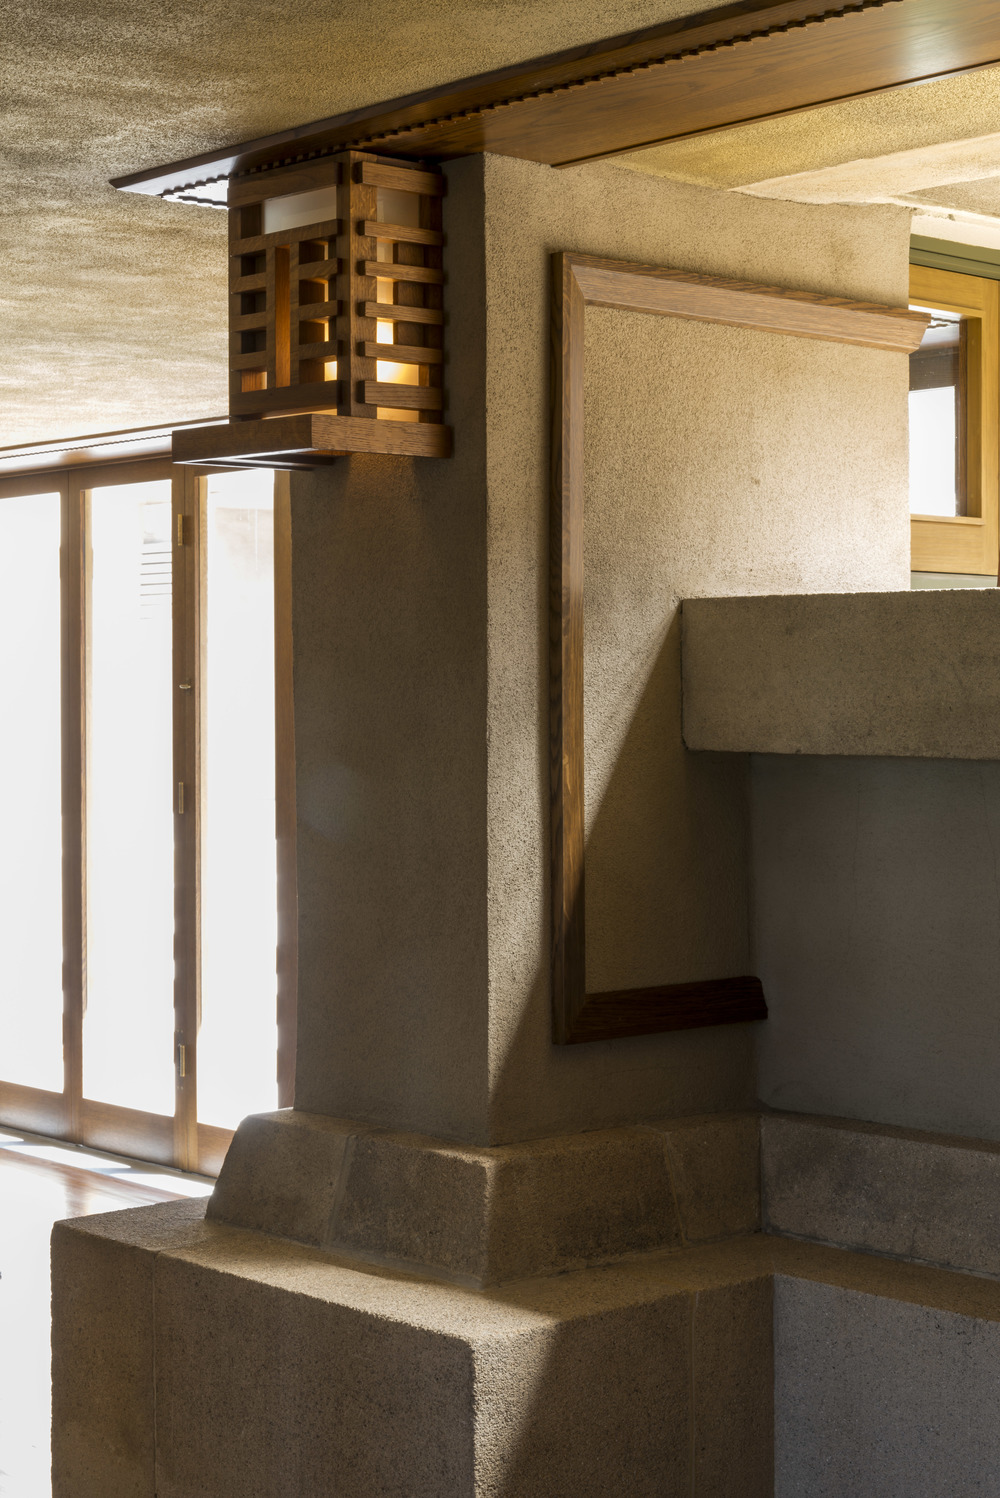 Frank Lloyd Wright's Hollyhock House (interior detail) Photo: Joshua White